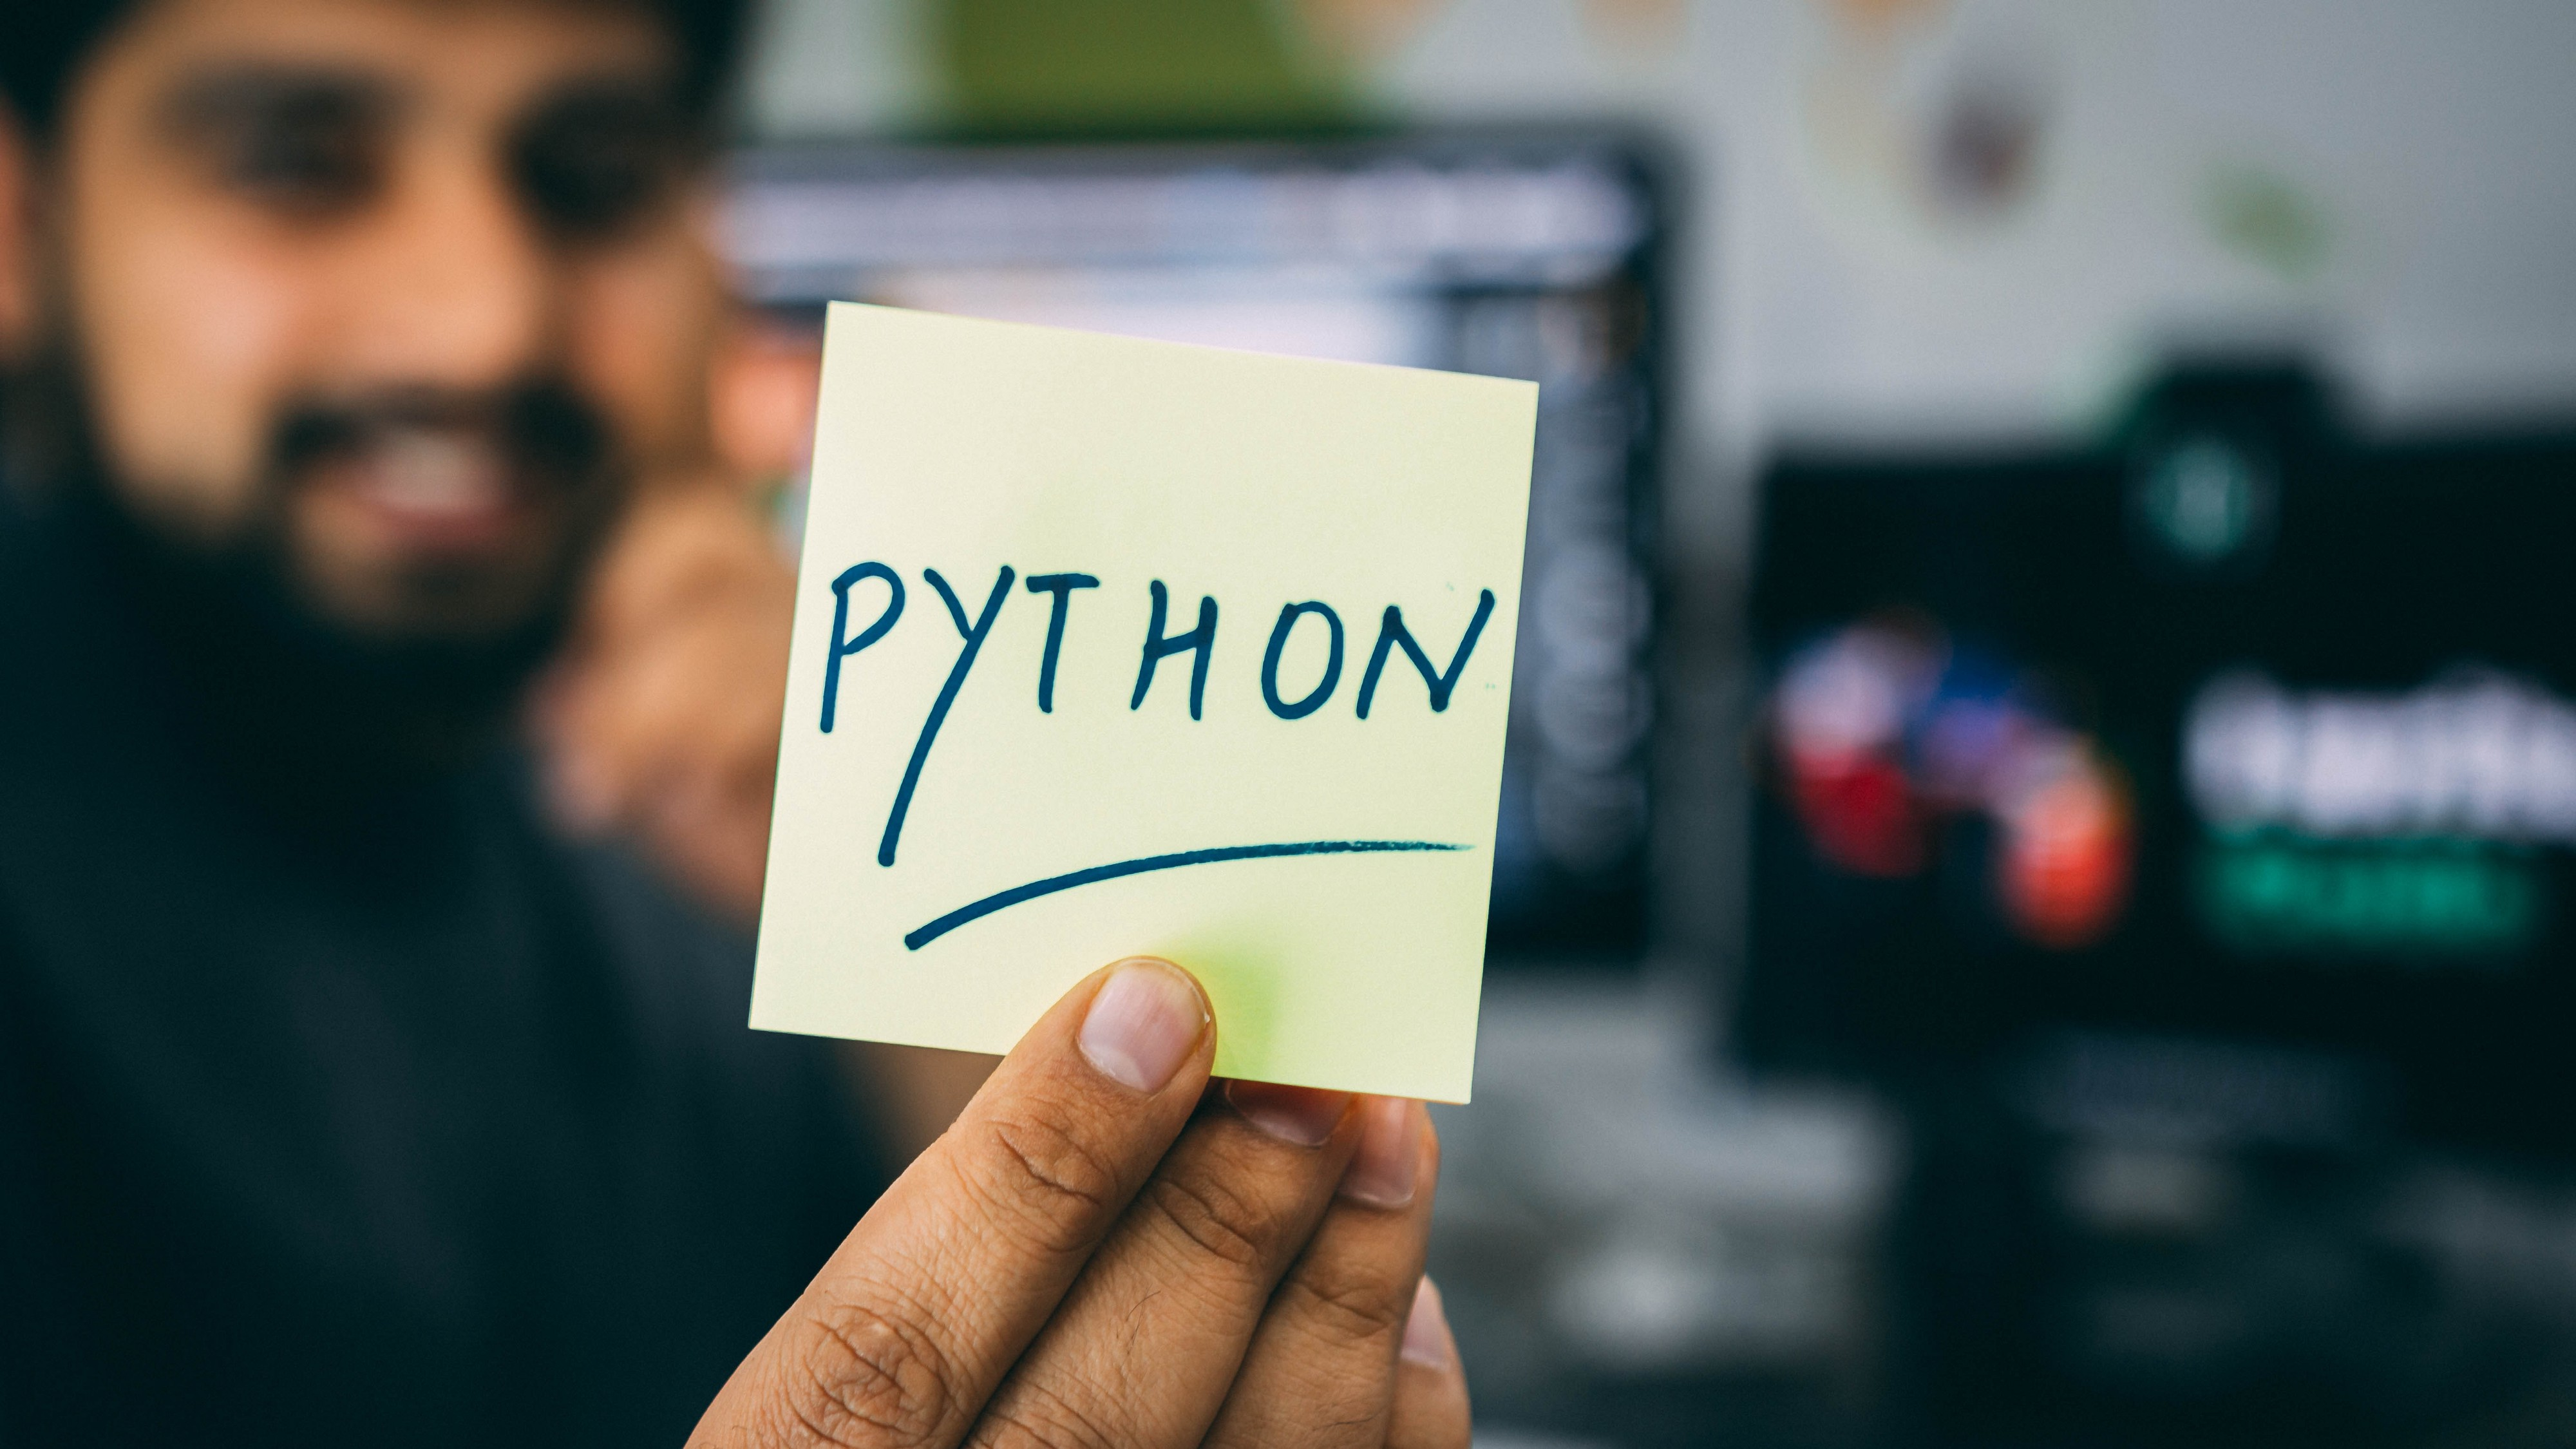 Python — One of the most powerful language